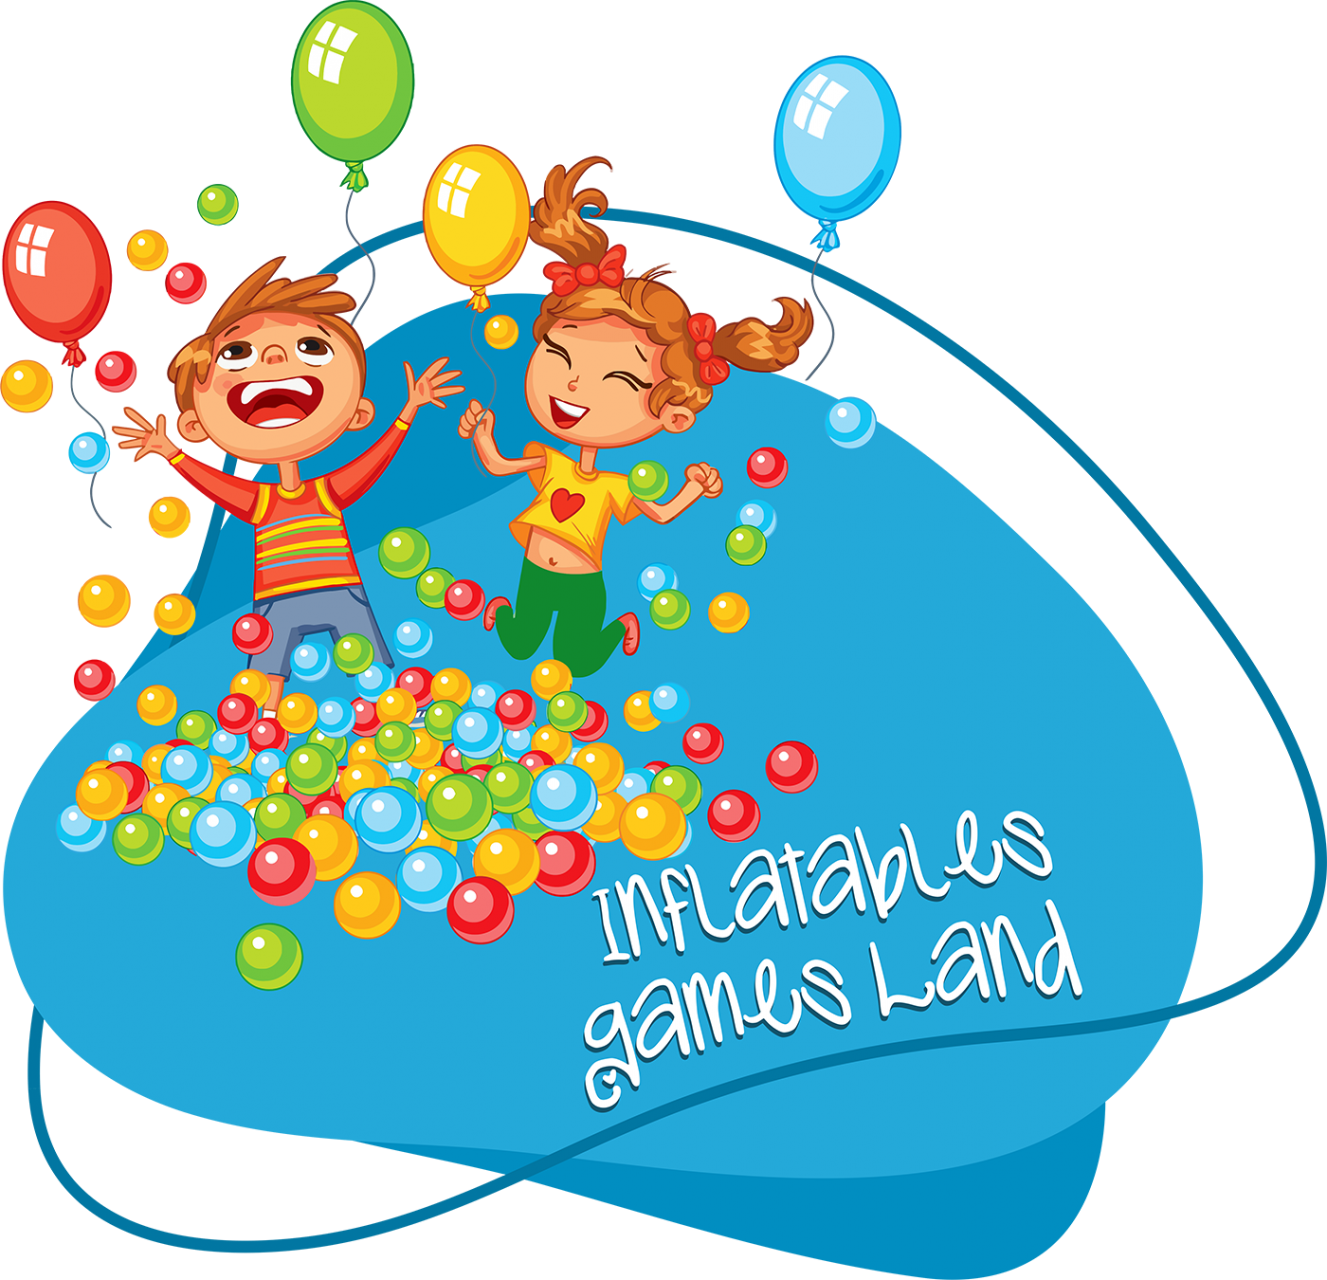 Inflatables Games Land